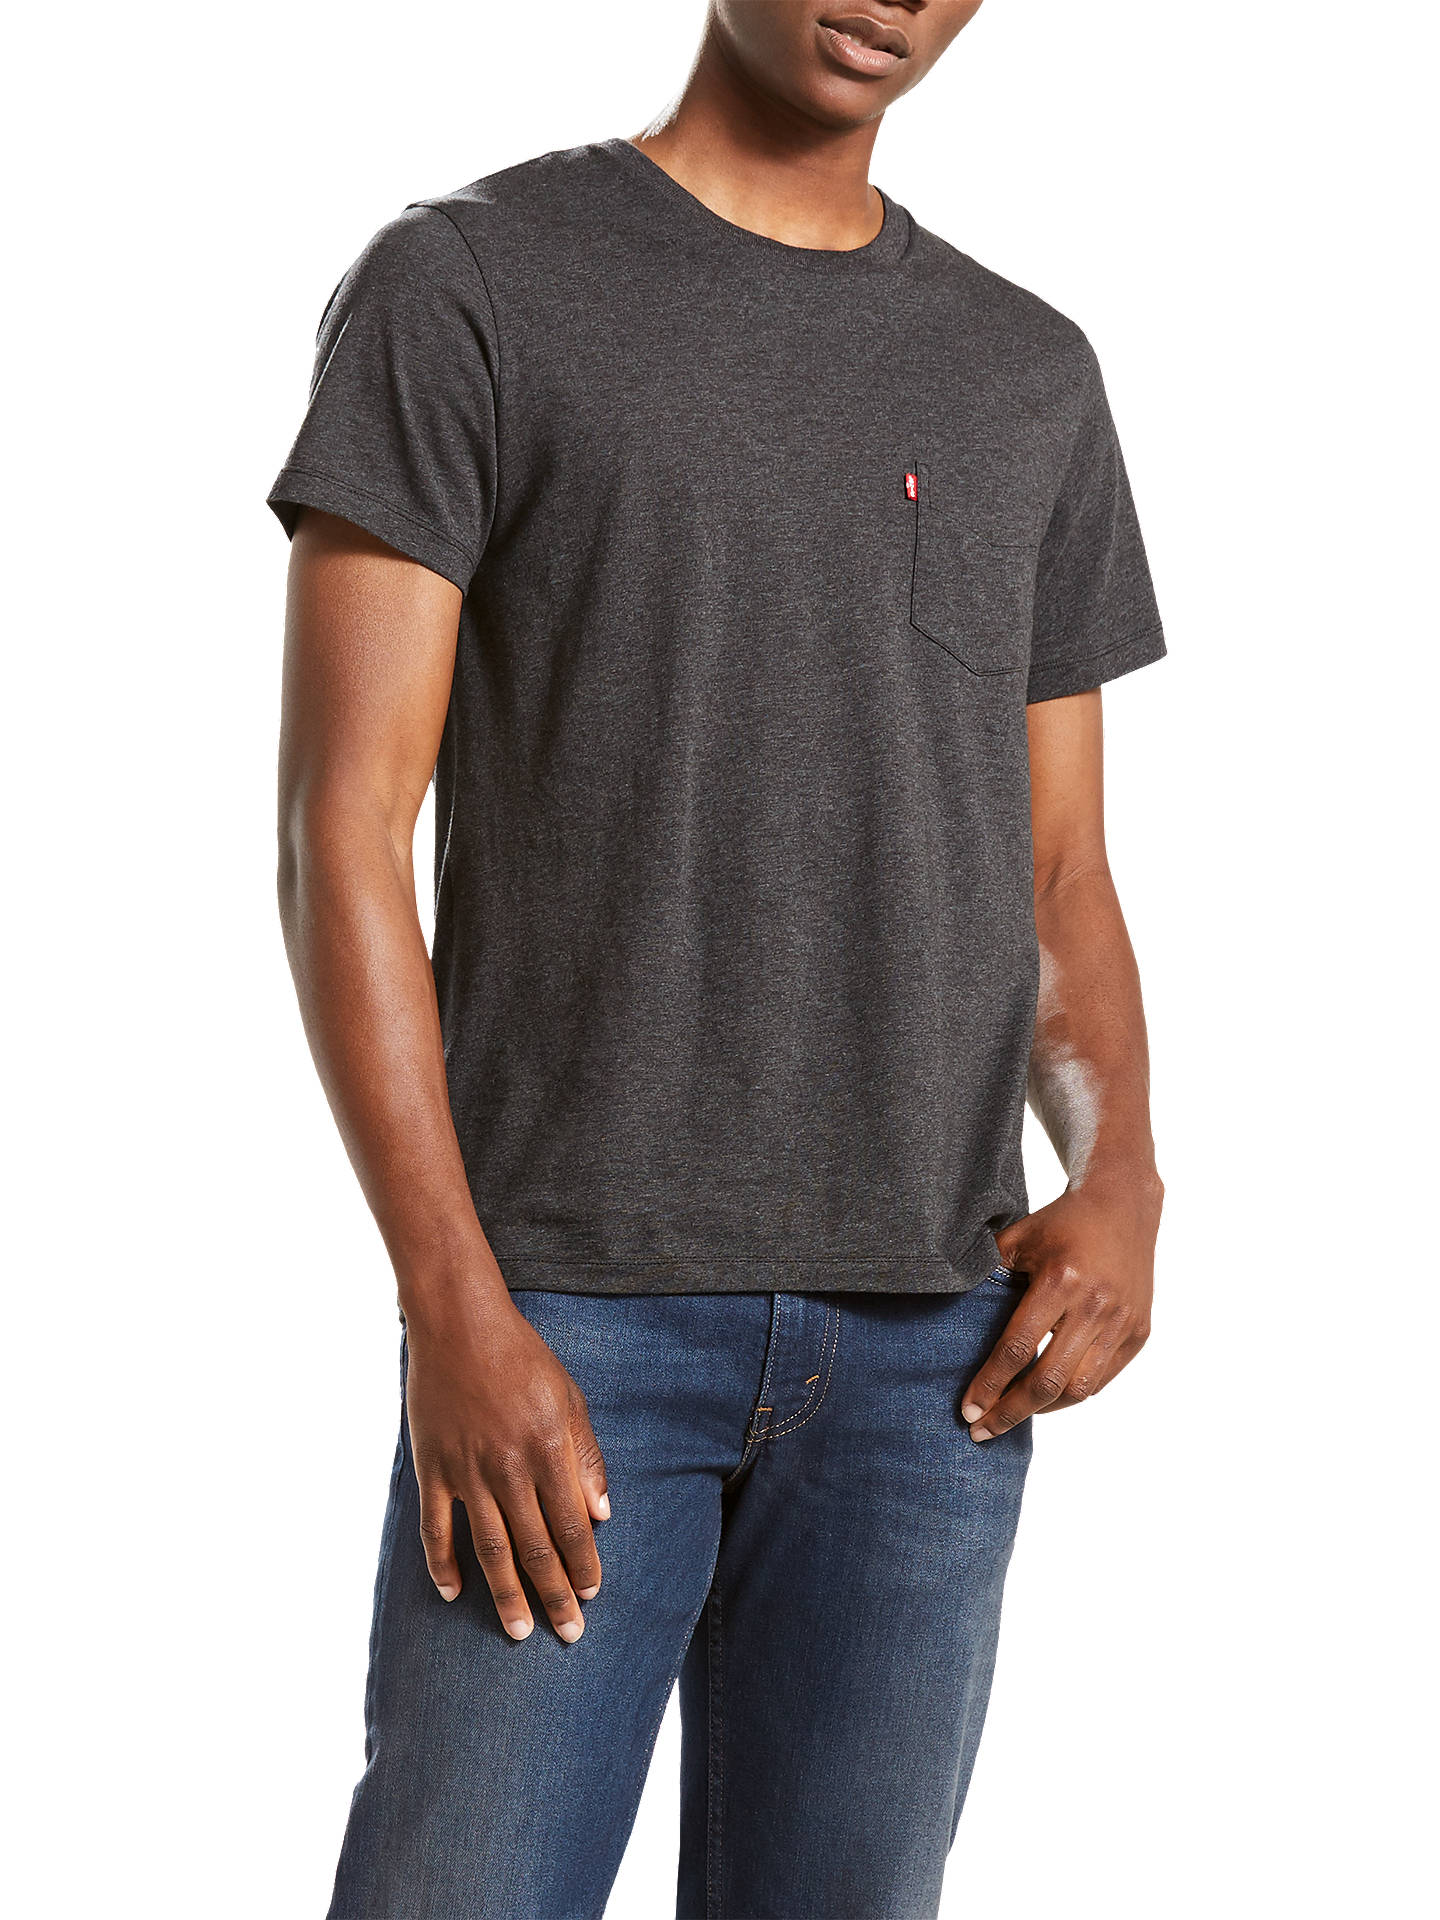 da7caa42 Buy Levi's Short Sleeve Sunset Pocket T-Shirt, Obsidian Heather, S Online at  ...